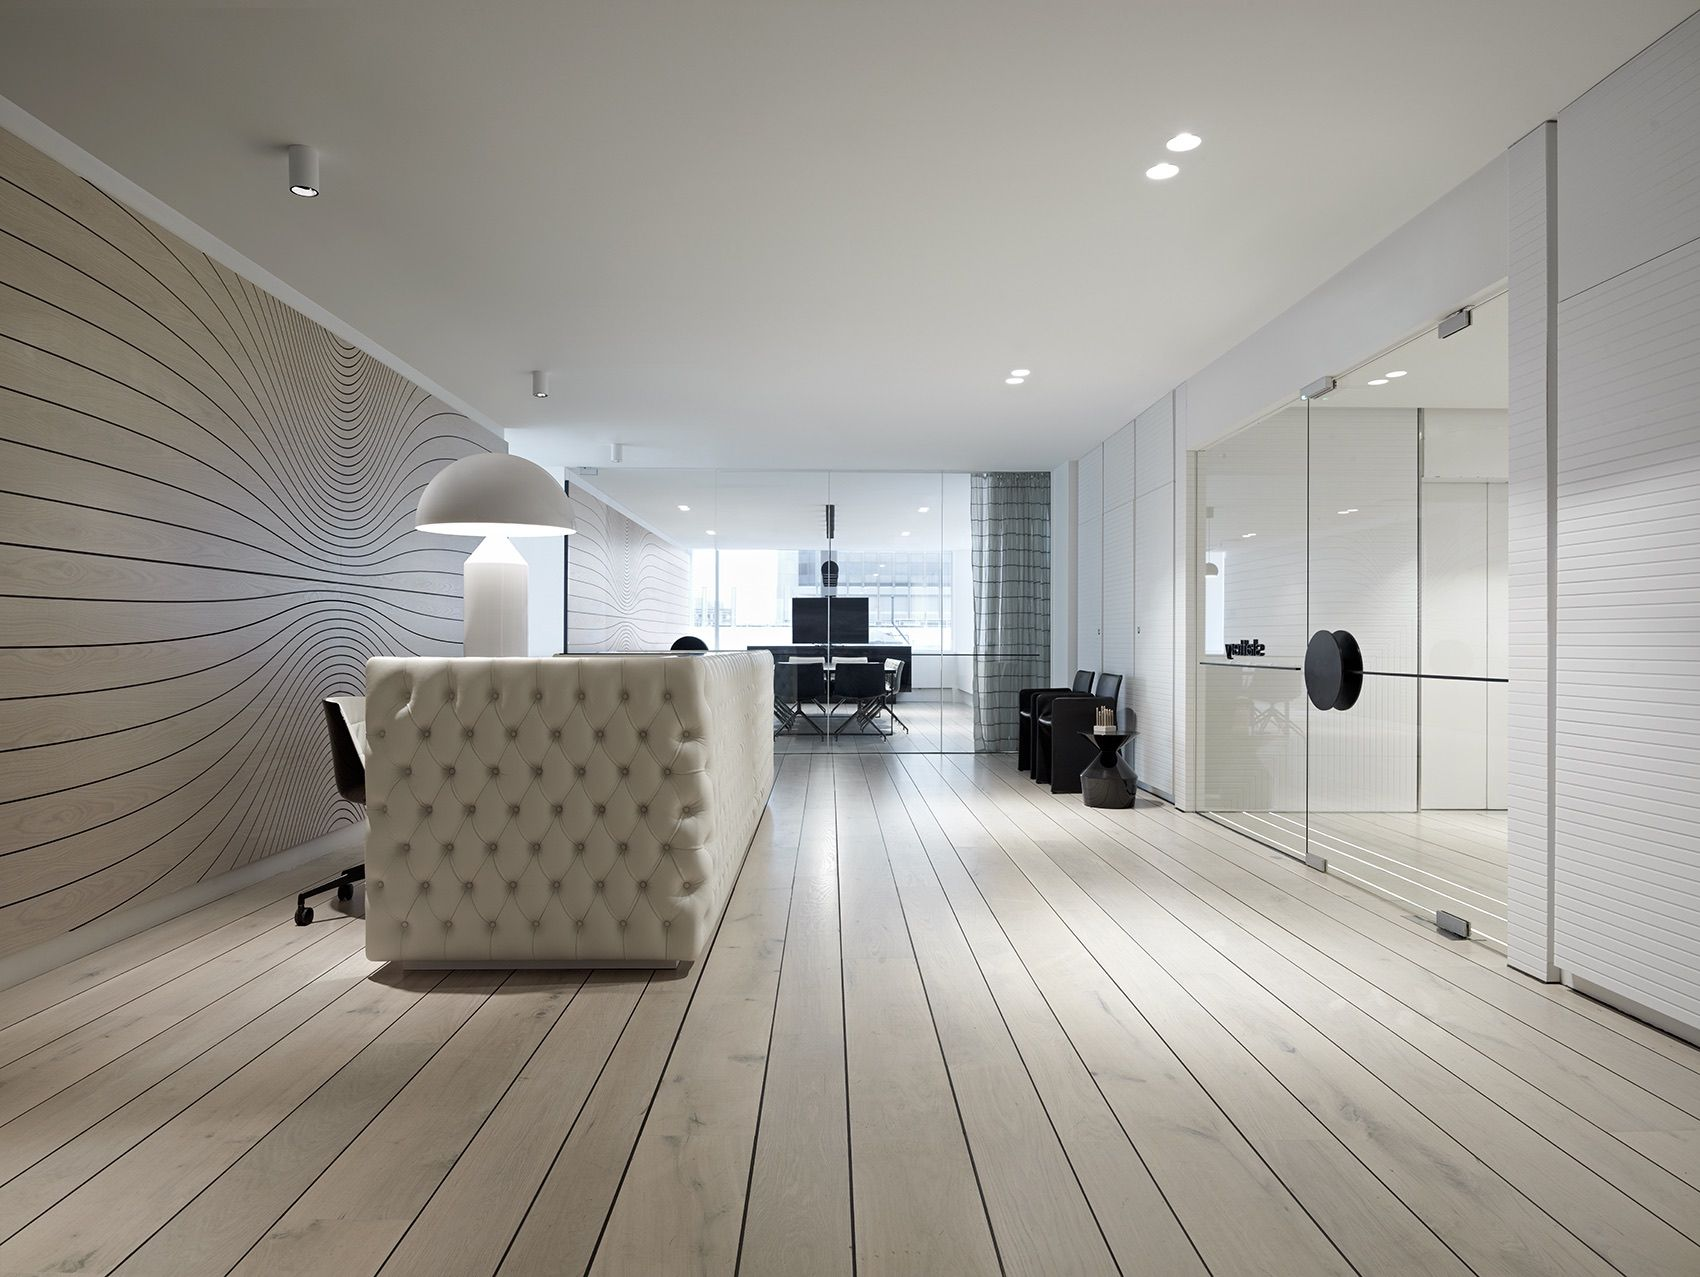 A Look Inside Slattery S Elegant New Melbourne Office In 2020 Office Pictures Office Interior Design Office Interiors